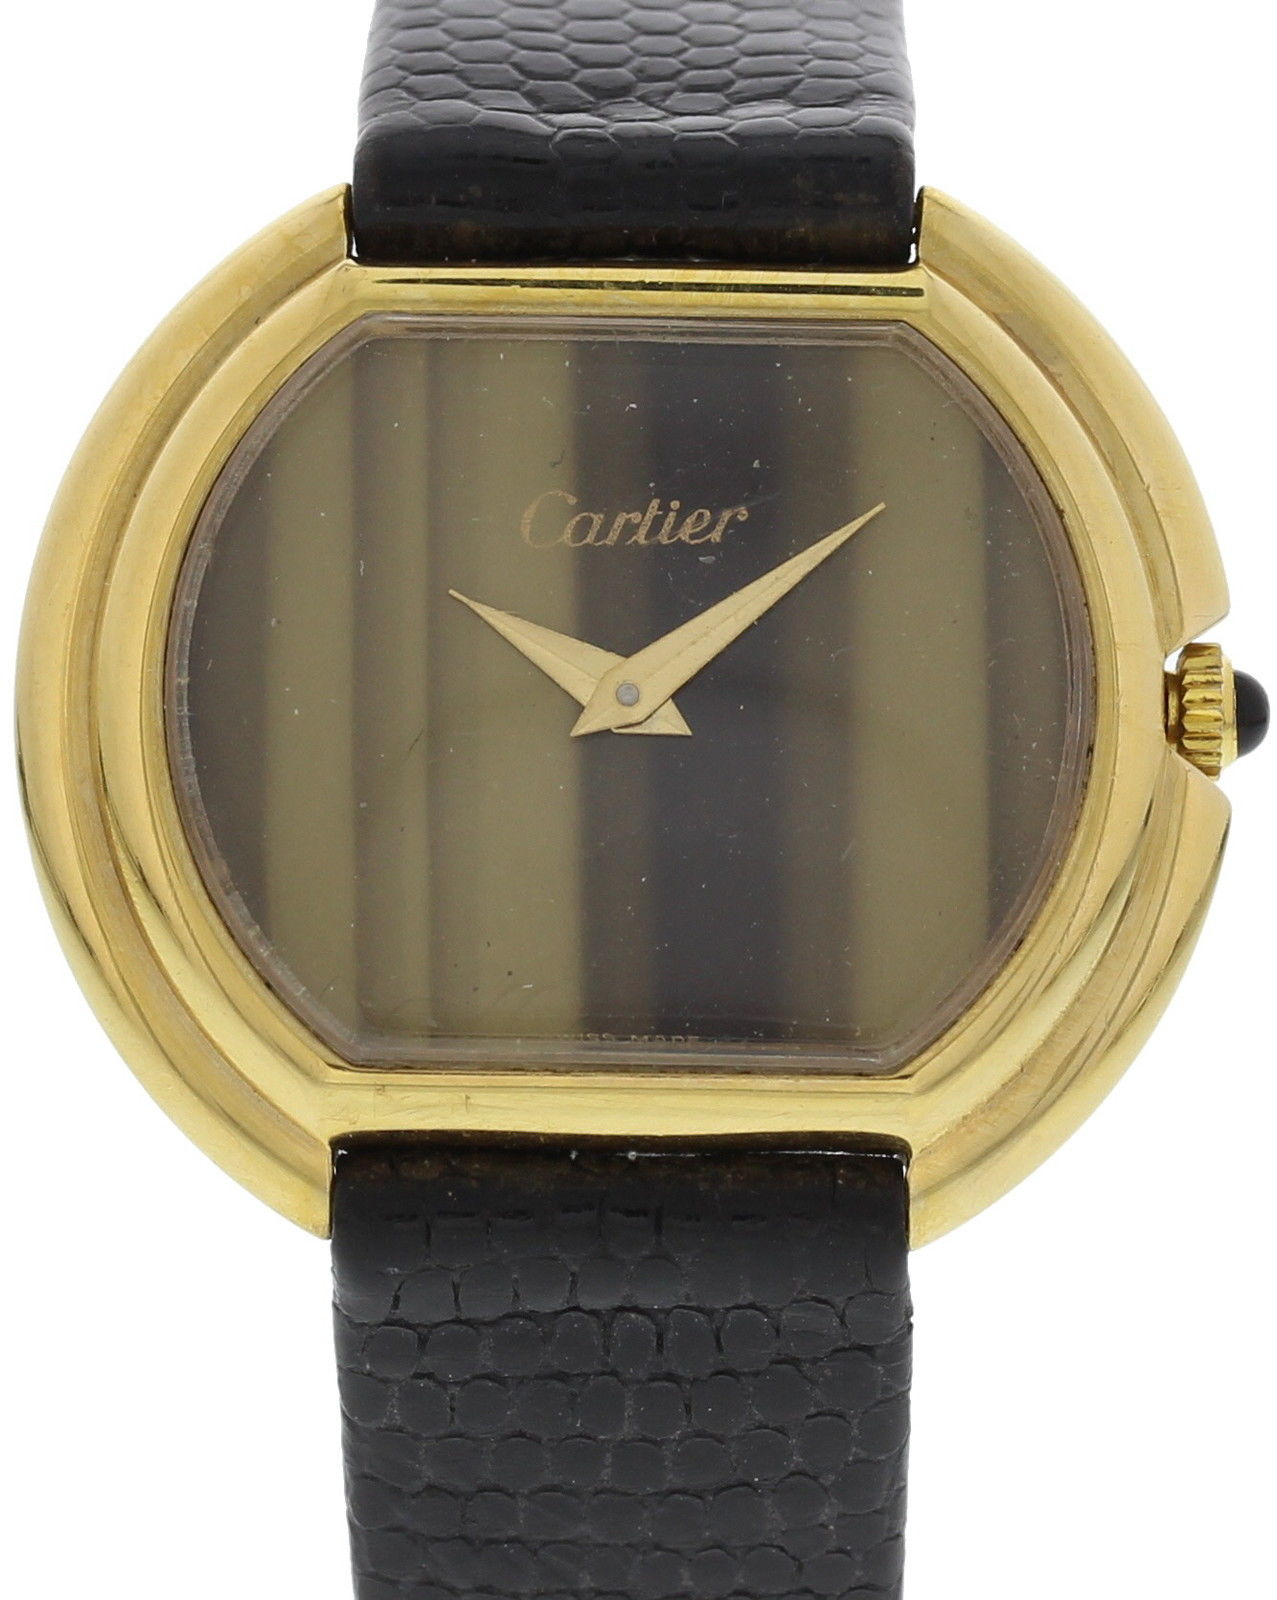 """""Cartier 18K Yellow Gold W/ Tiger Eye Dial Vintage 32mm Watch 1970's"""""" 926525"